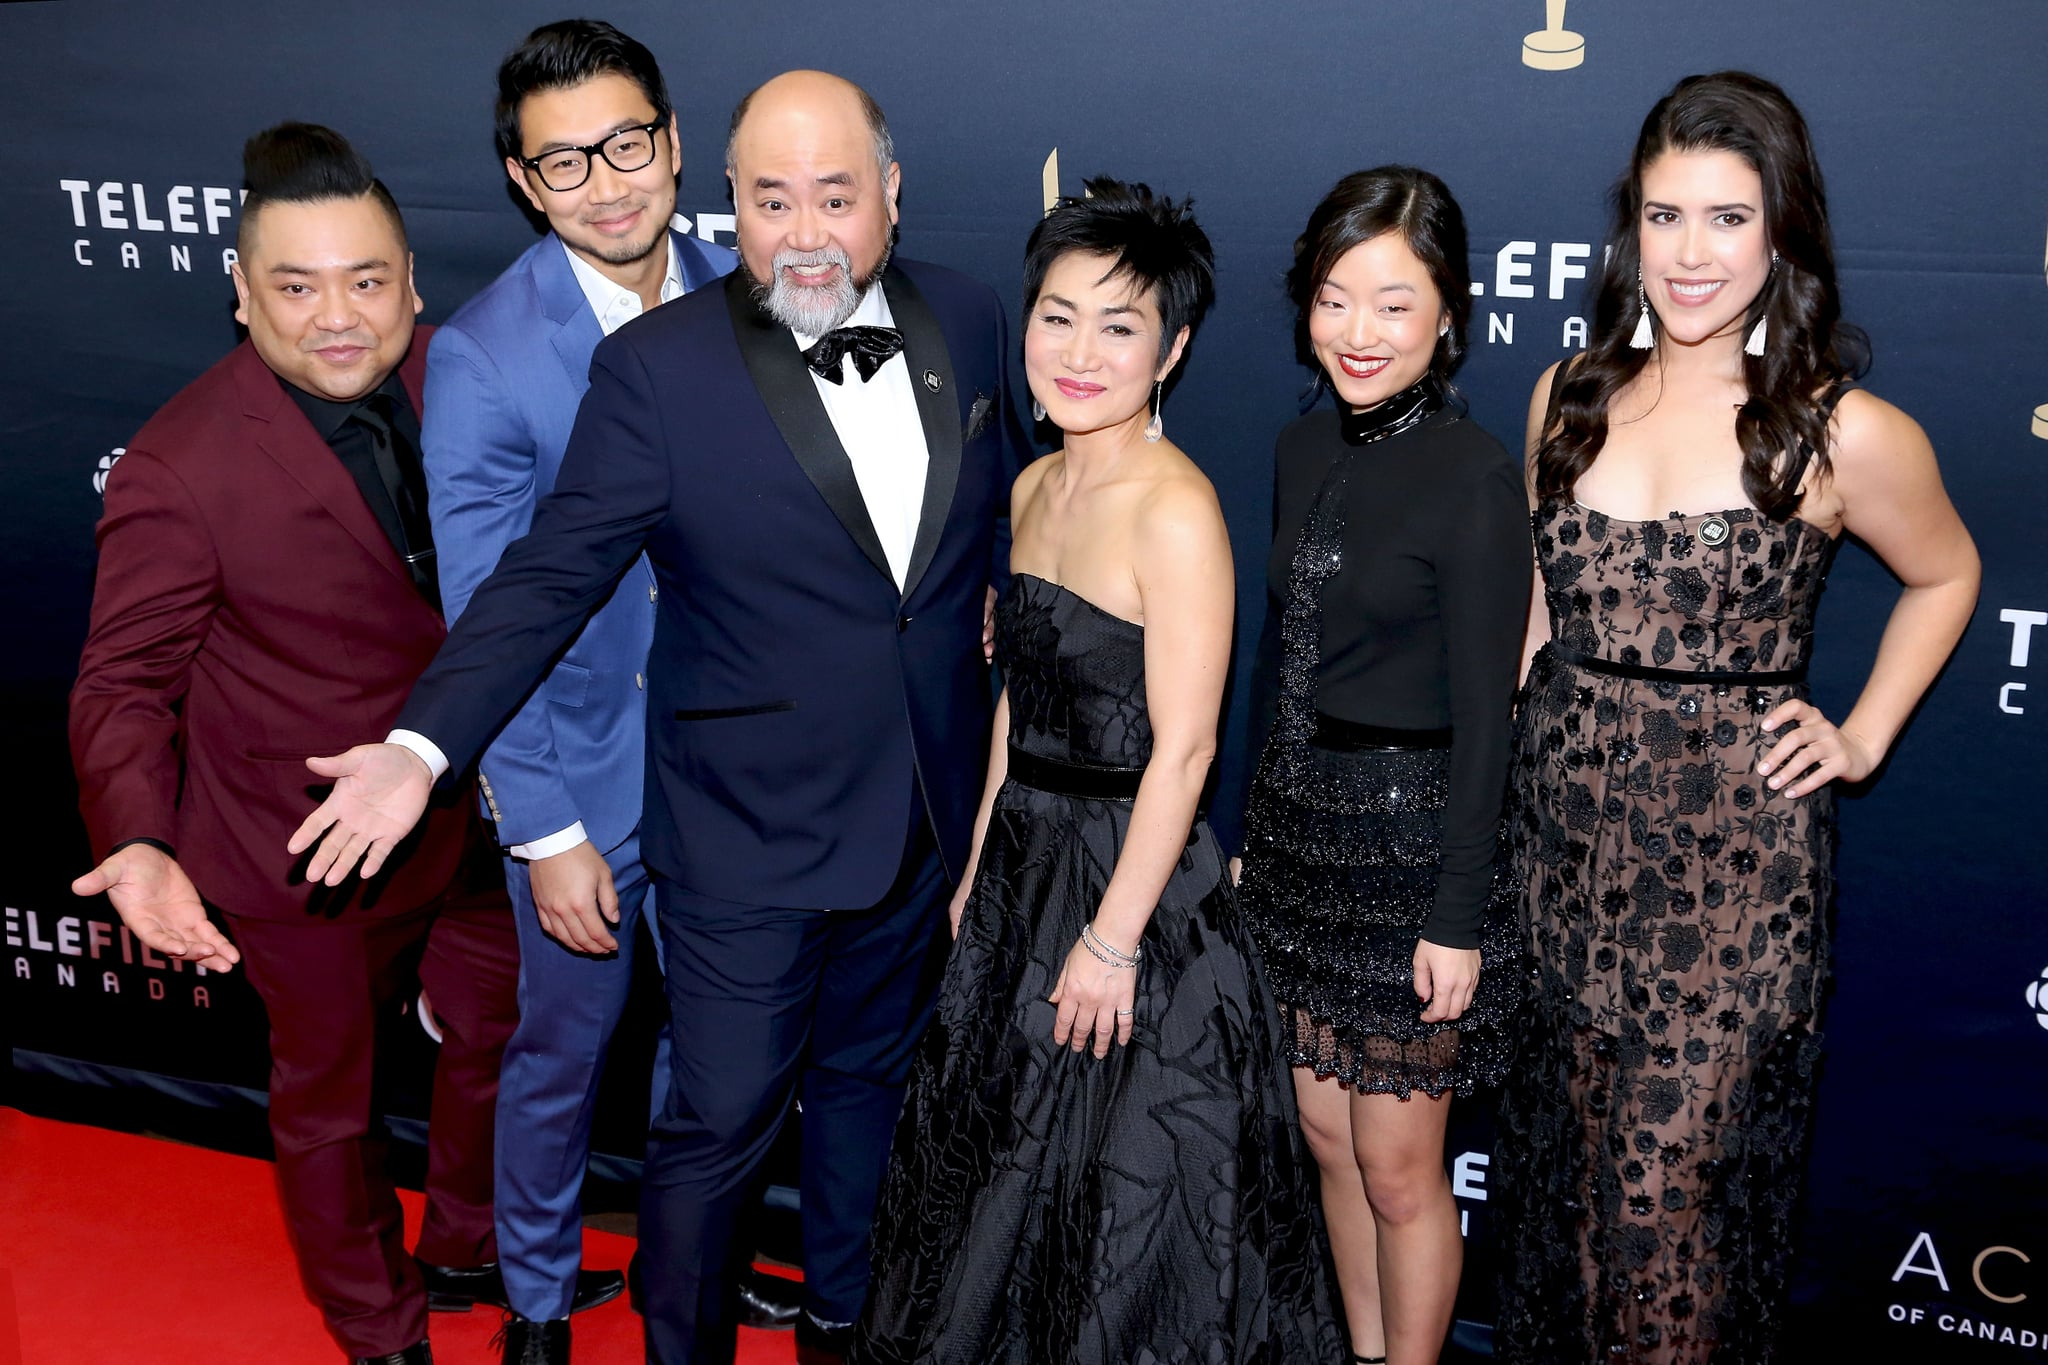 TORONTO, ON - MARCH 11:  (L-R) Simu Liu, Andrew Phung, Paul Sun-Hyung Lee, Jean Yoon, Andrea Bang and Nicole Power arrive at the 2018 Canadian Screen Awards at the Sony Centre for the Performing Arts on March 11, 2018 in Toronto, Canada.  (Photo by Isaiah Trickey/FilmMagic)